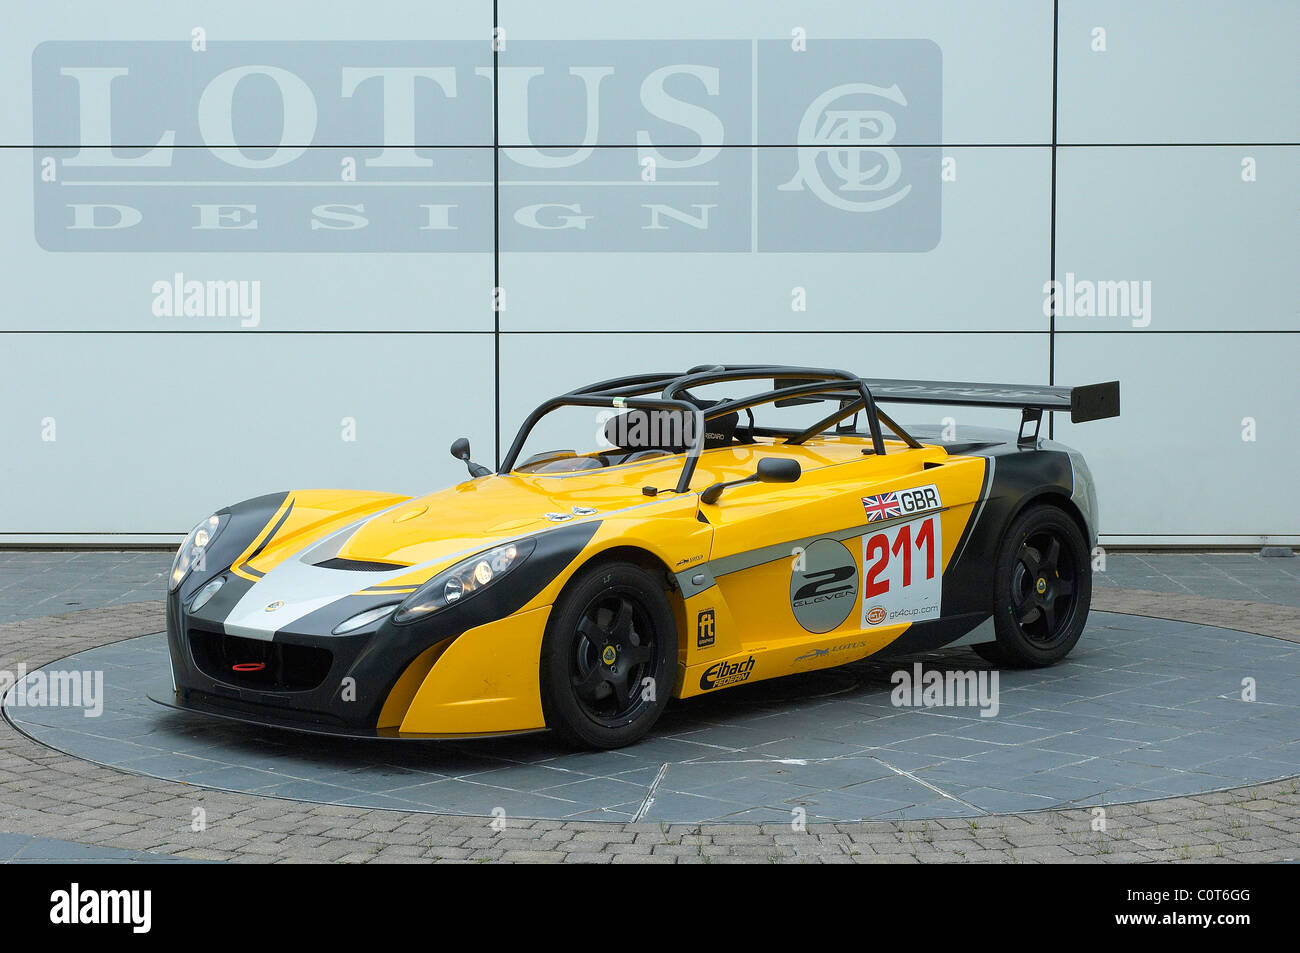 https://c8.alamy.com/comp/C0T6GG/racebred-2-eleven-unleashed-in-2007-lotus-released-the-2-eleven-track-C0T6GG.jpg